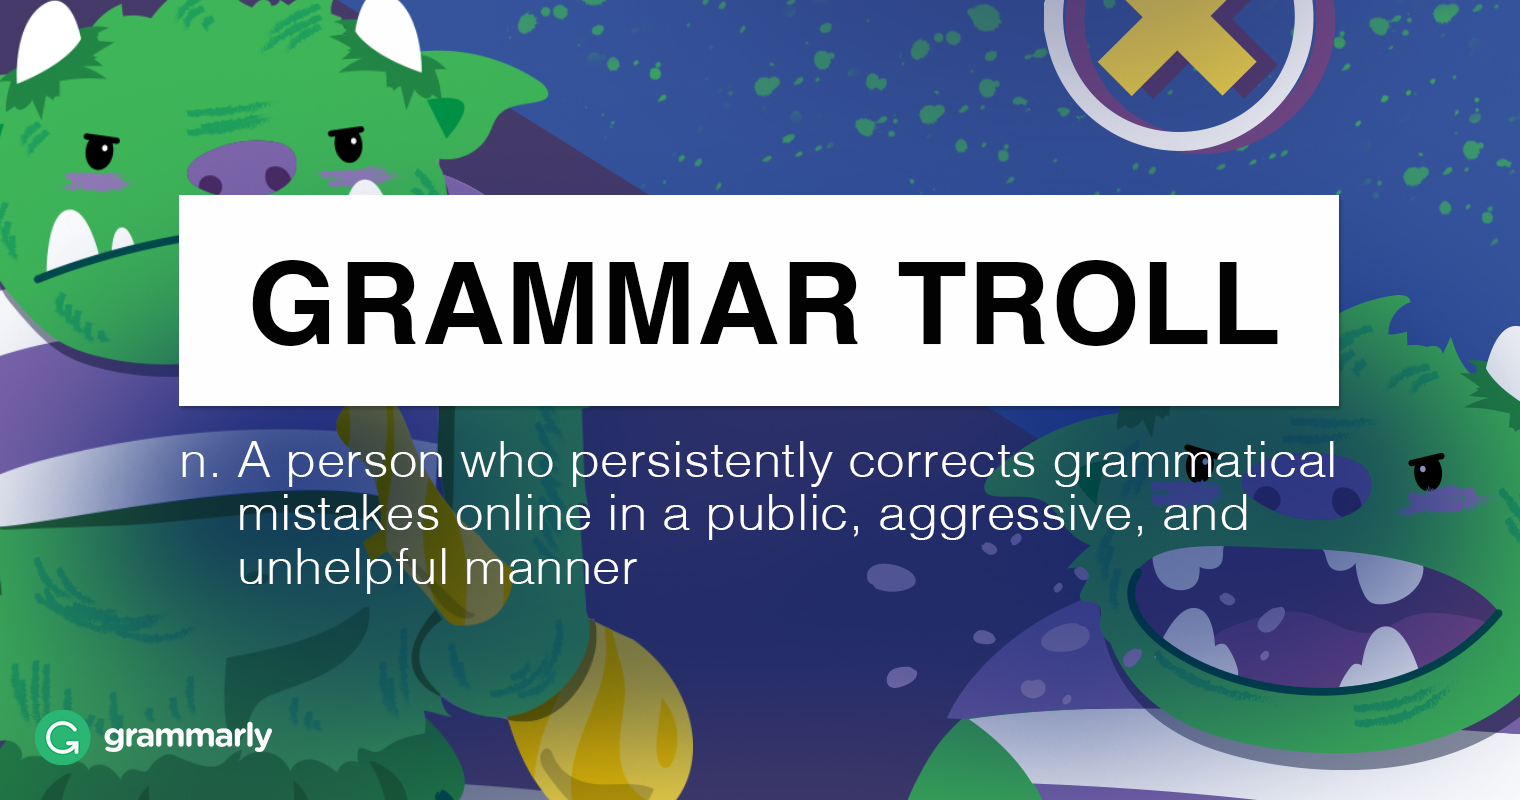 It's Time to End Grammar Trolling image